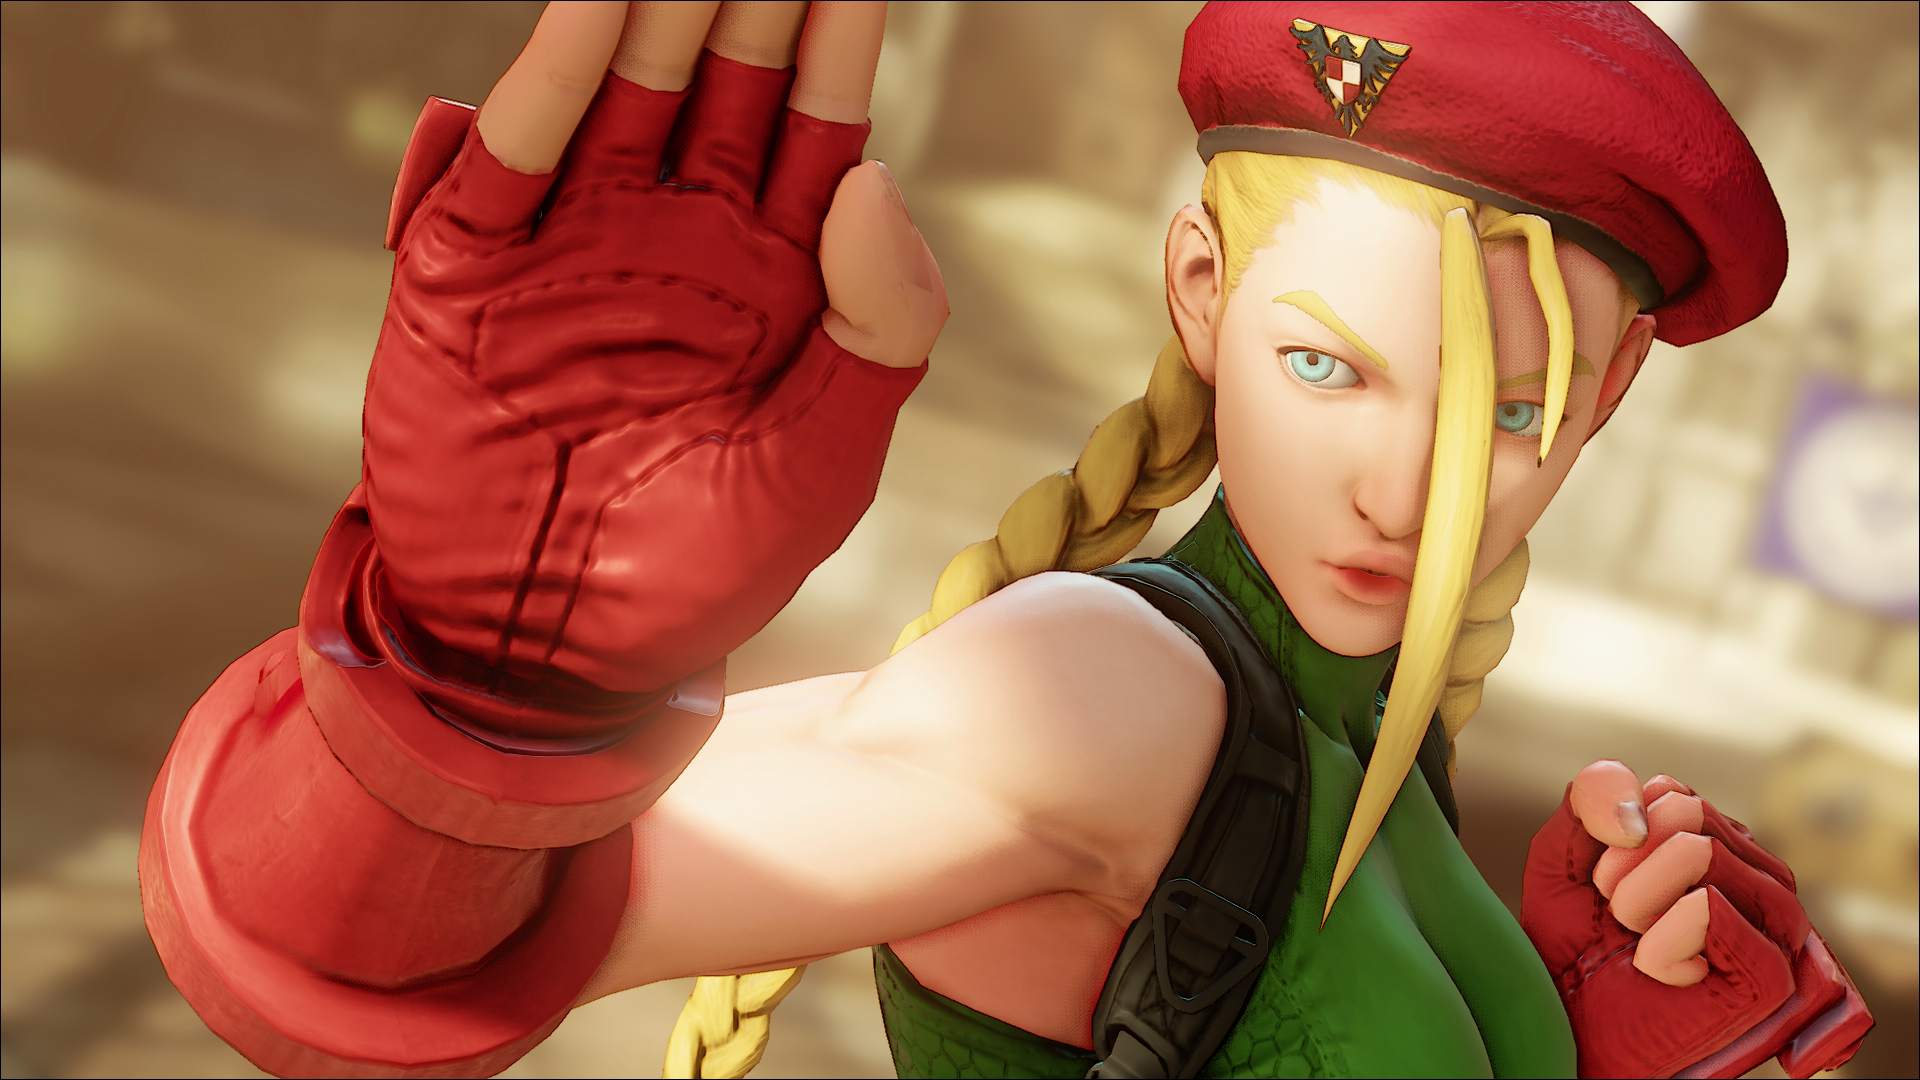 09_Cammy_Intro_1434381174